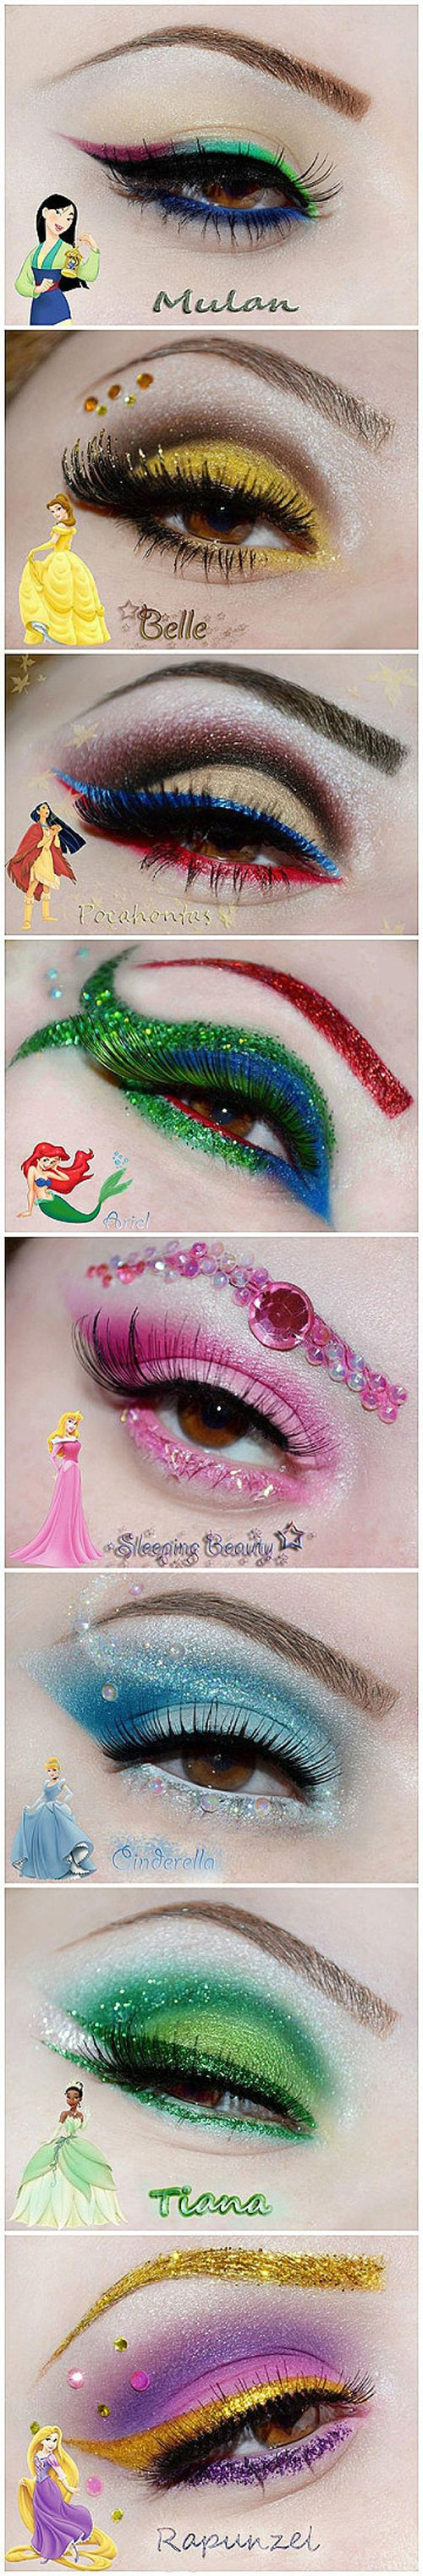 20-Halloween-Eye-Makeup-Ideas-Looks-For-Girls-Women-2017-22